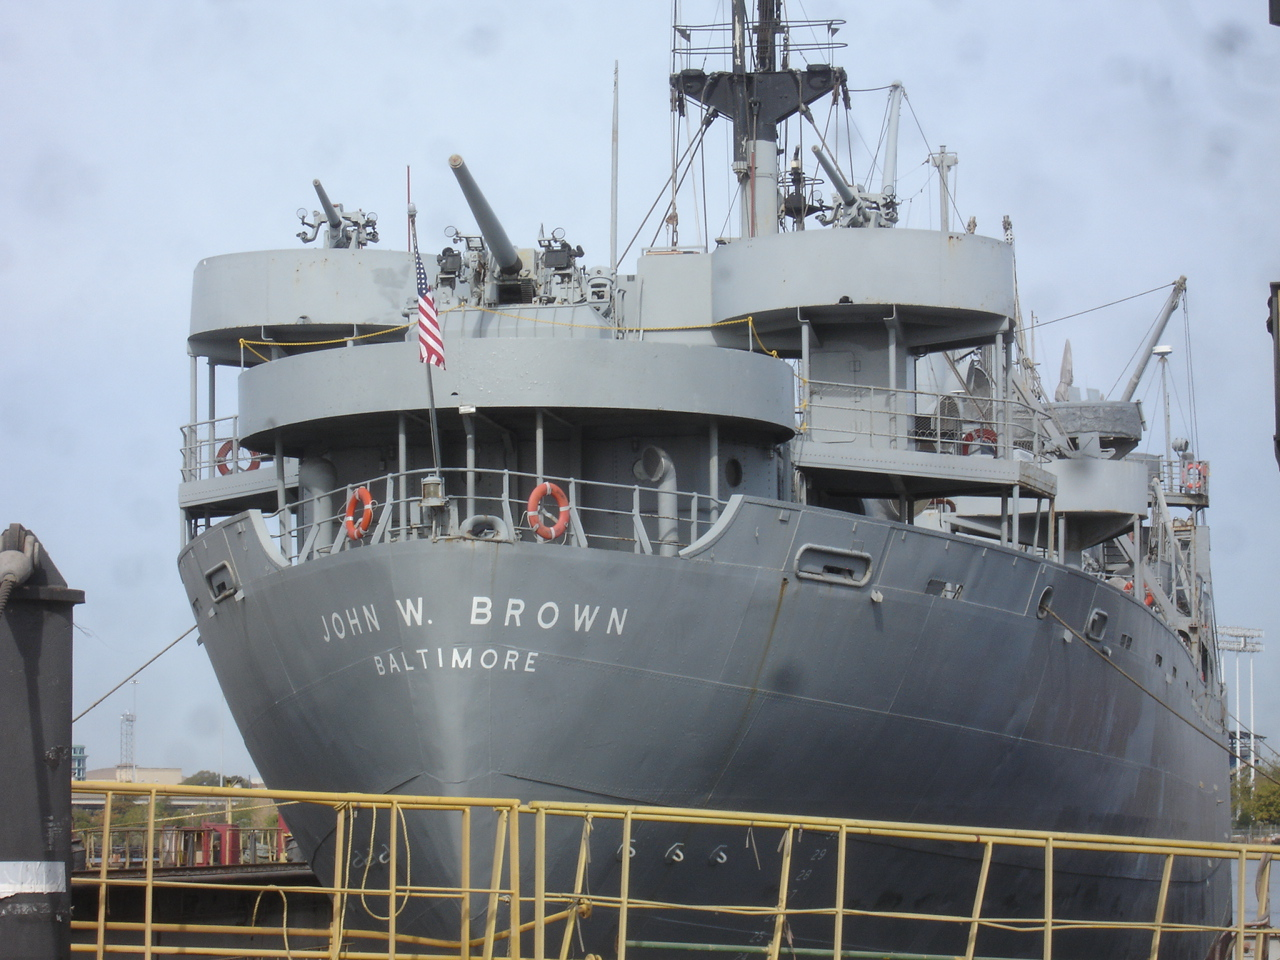 USS John W. Brown